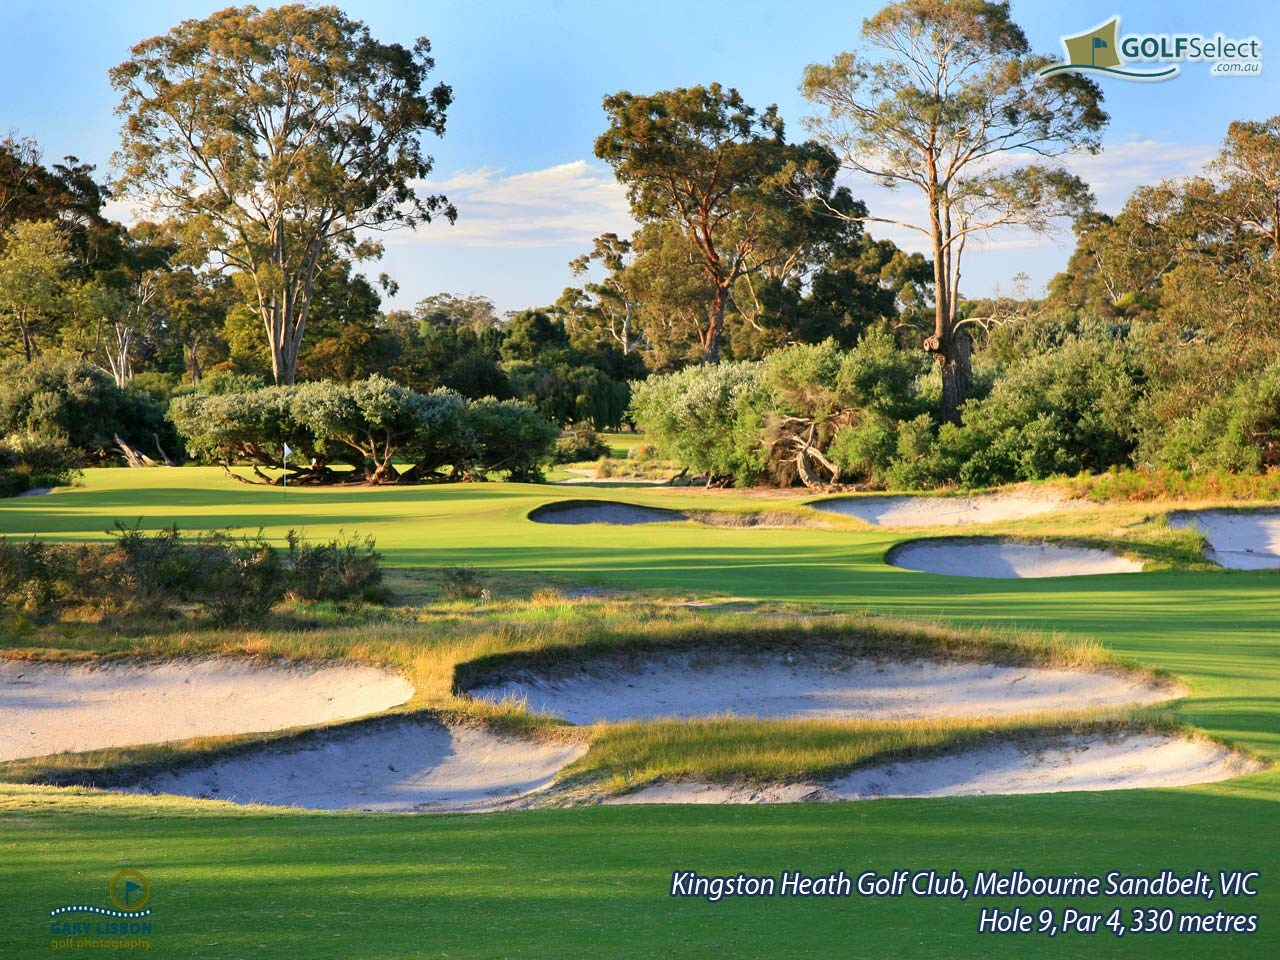 Kingston Heath Golf Club Hole 9, Par 4, 330 metres